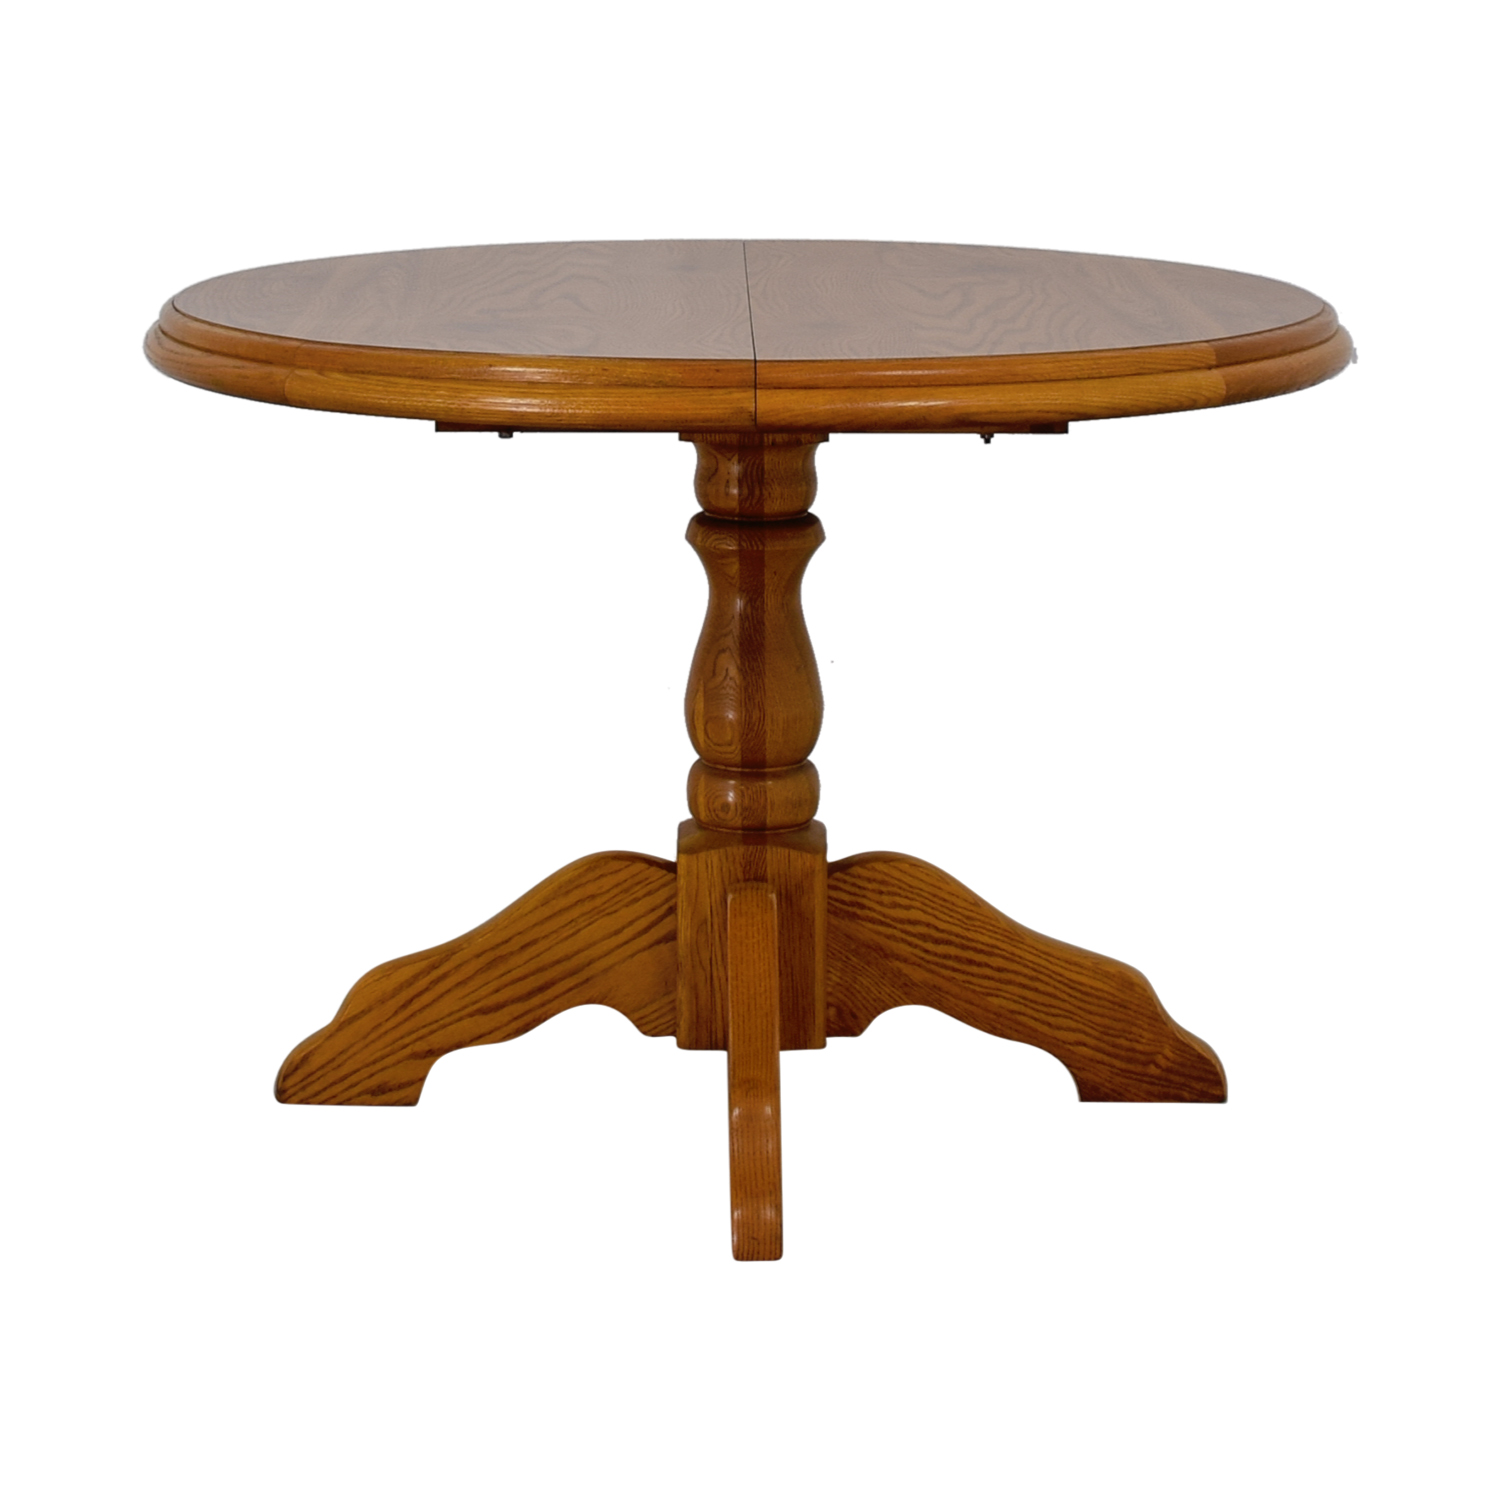 Virginia House Round Dining Table With Leaf On